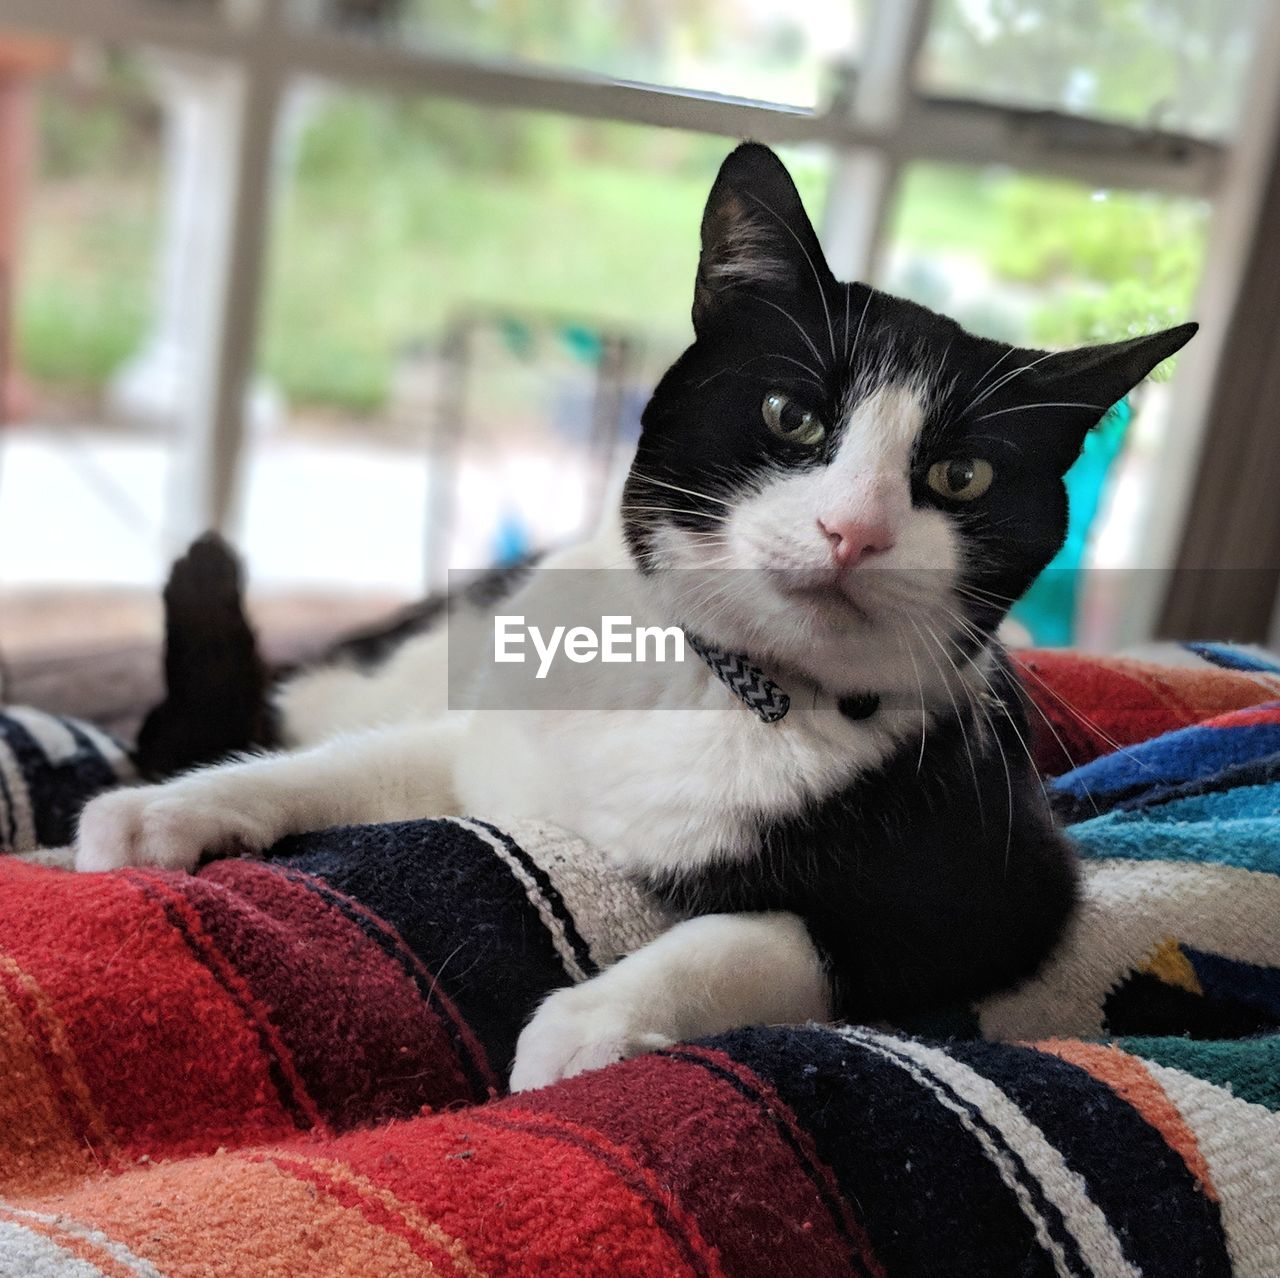 pets, domestic, domestic animals, animal themes, mammal, animal, one animal, cat, domestic cat, vertebrate, feline, relaxation, furniture, portrait, looking at camera, indoors, close-up, home interior, no people, focus on foreground, whisker, animal head